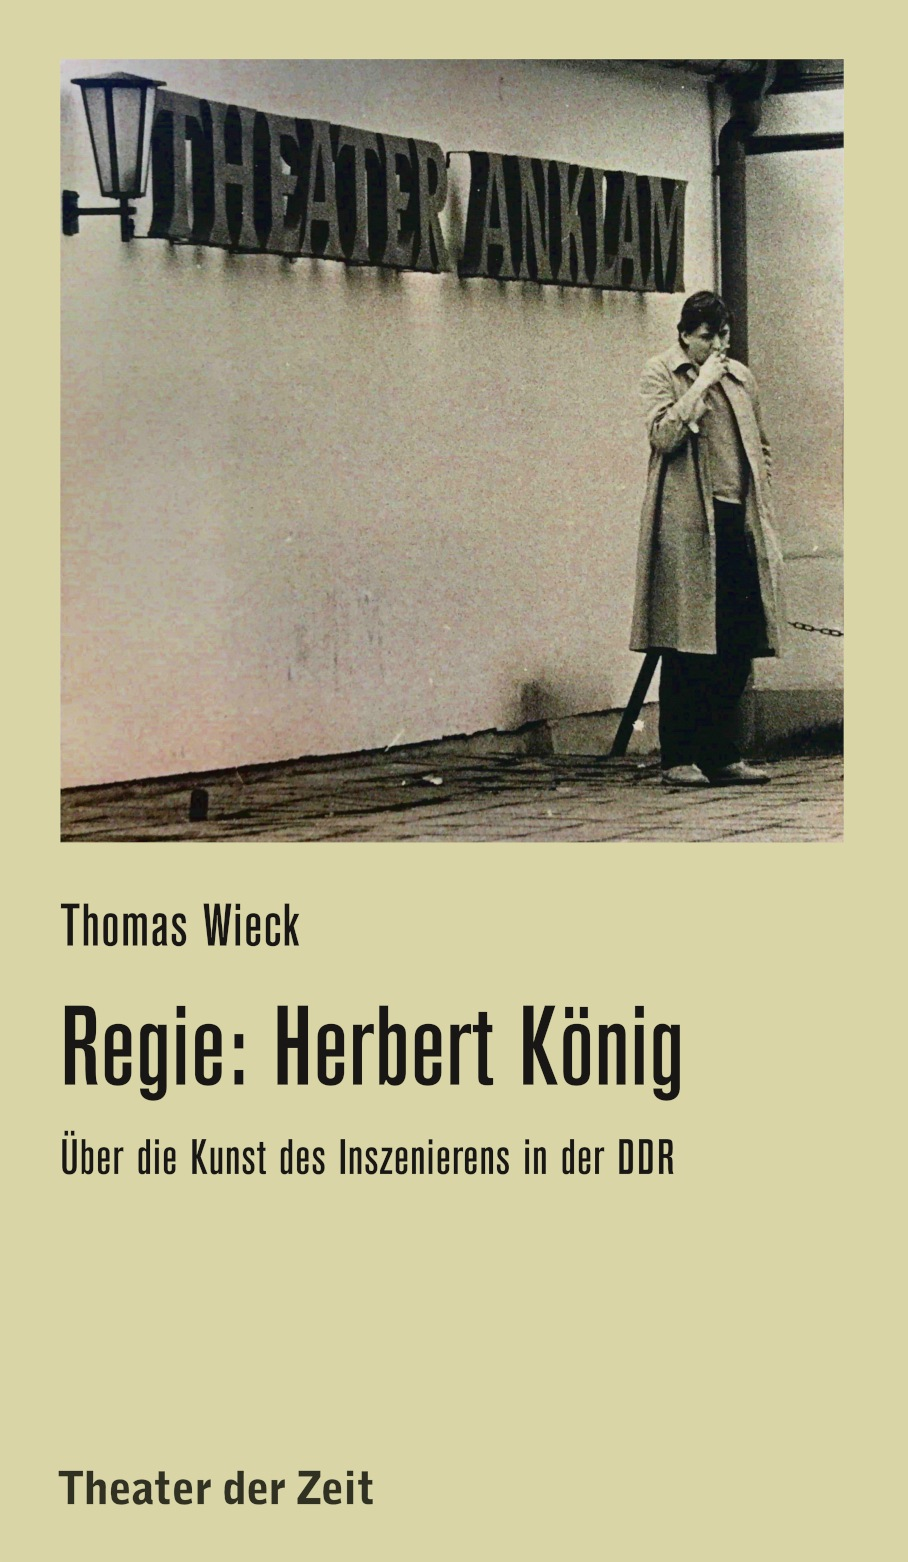 Thomas Wieck: Regie: Herbert König